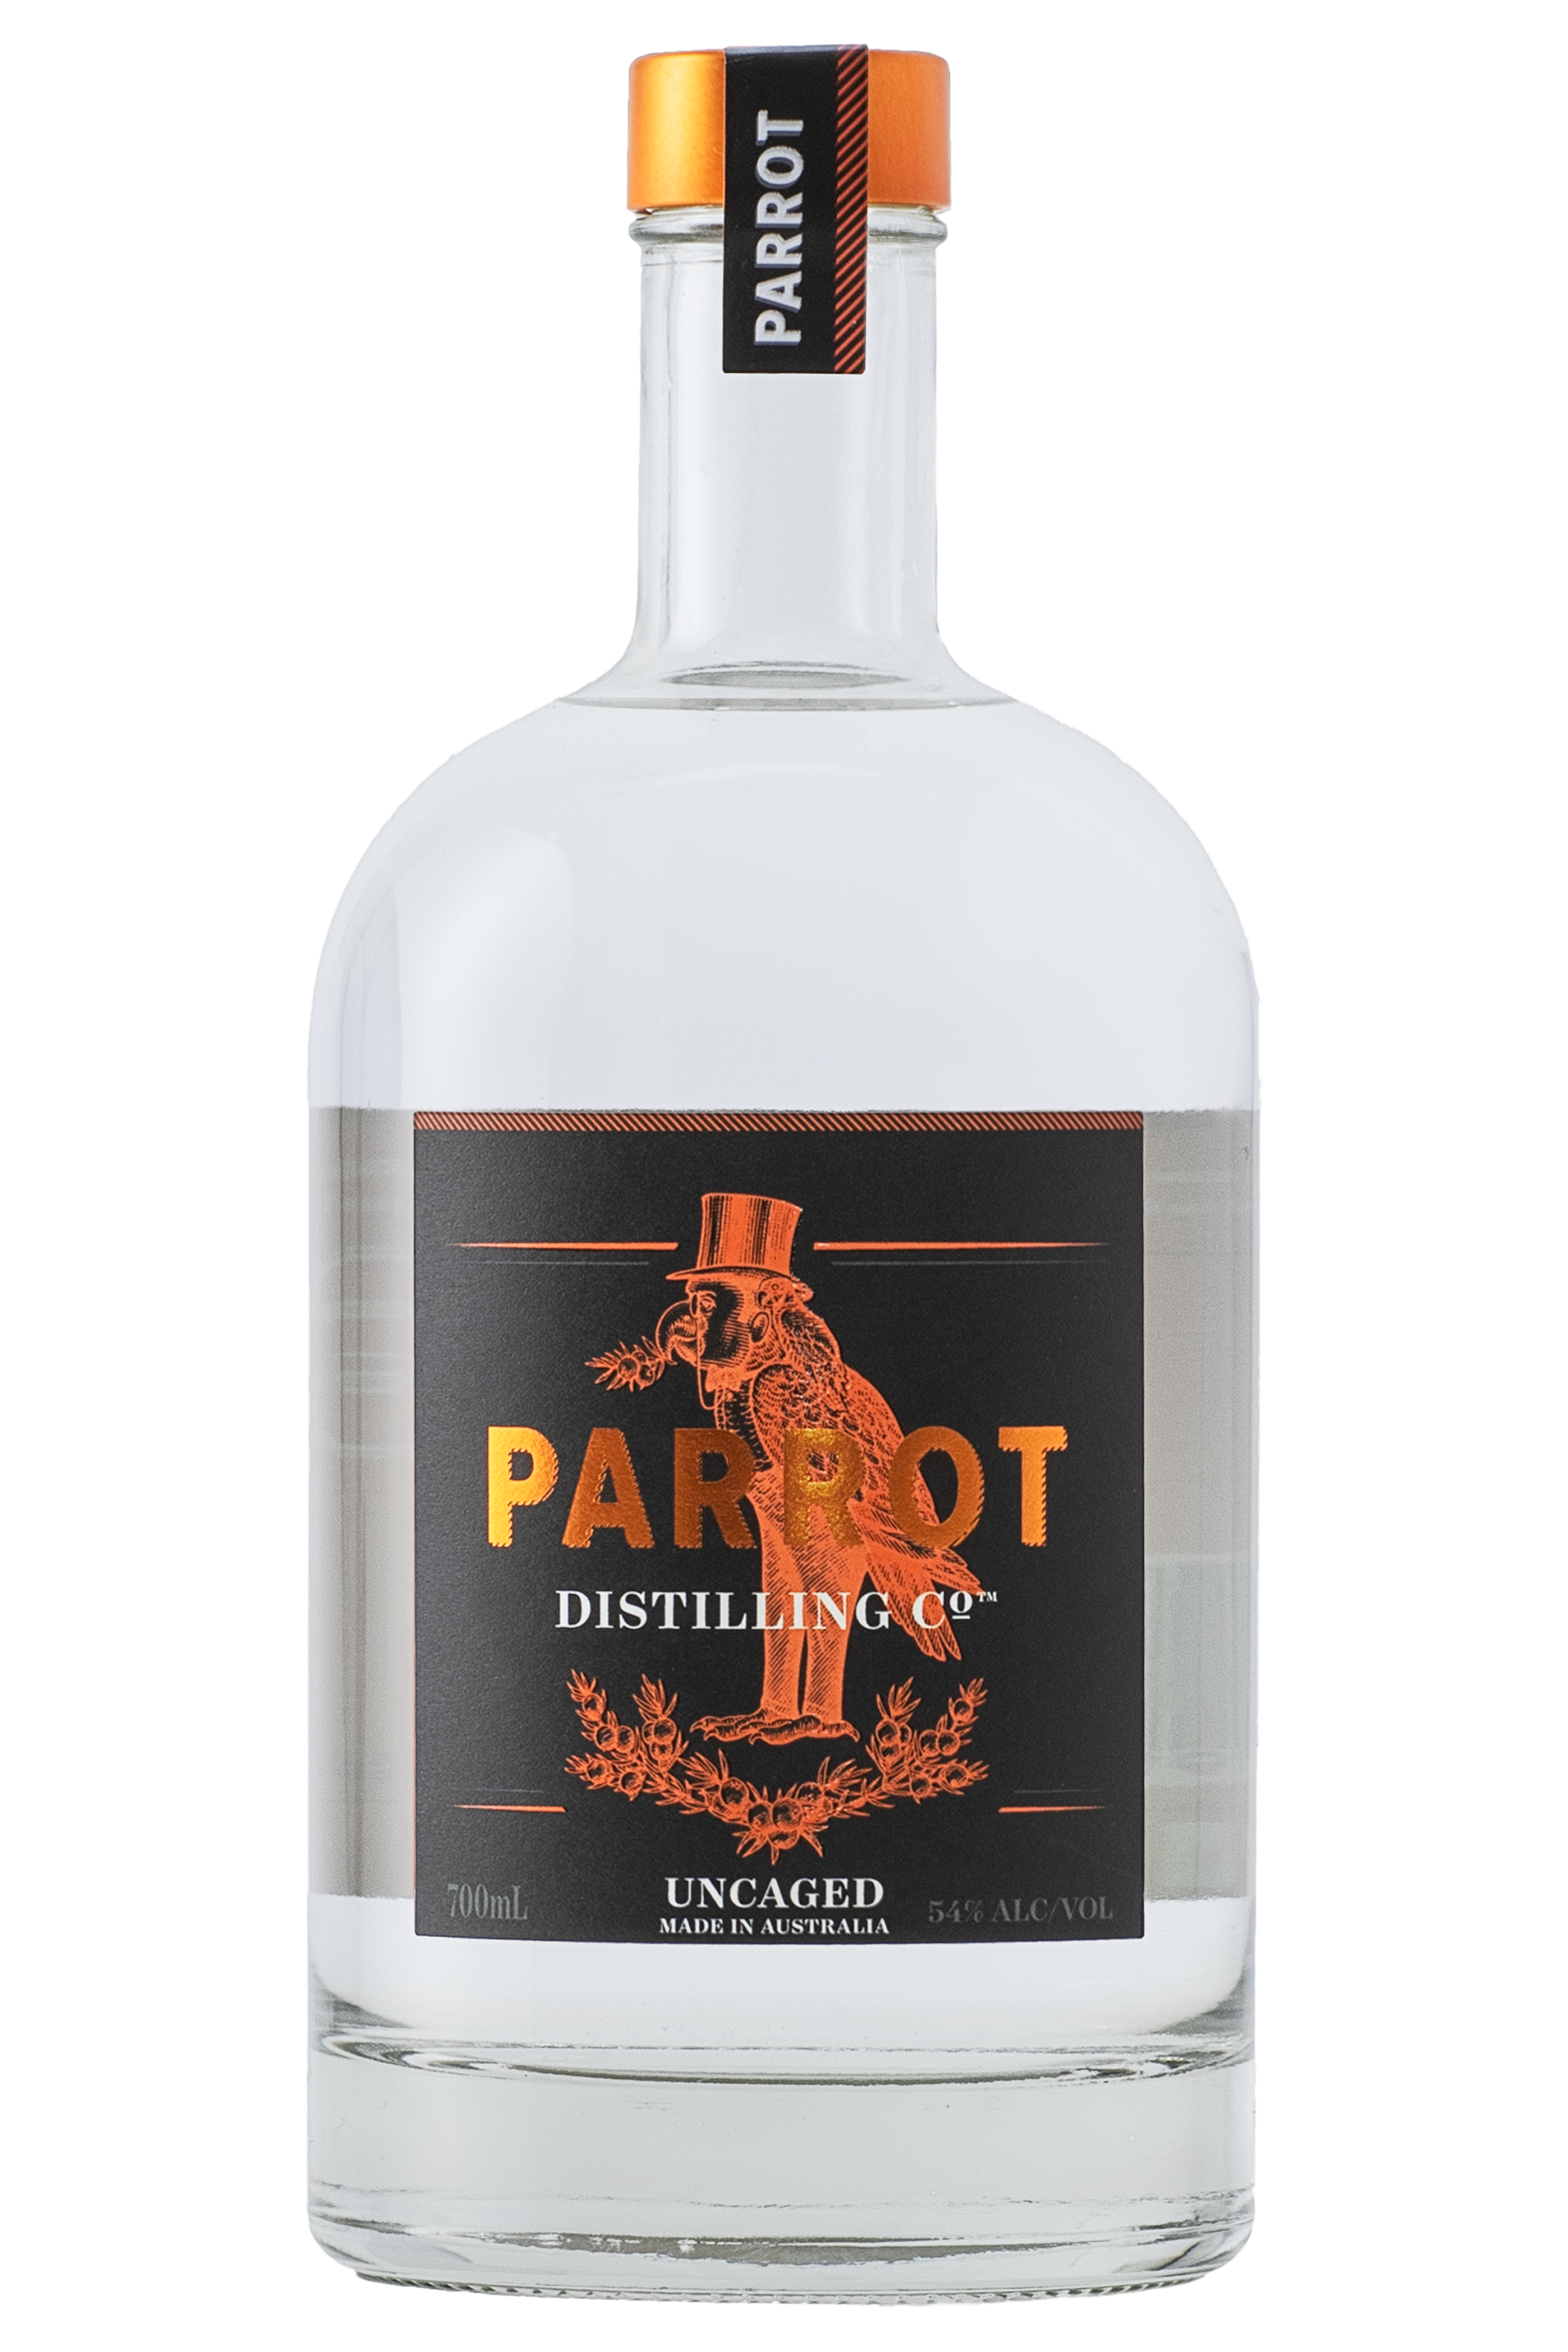 Parrot Distilling Co. 'Uncaged' OP Gin